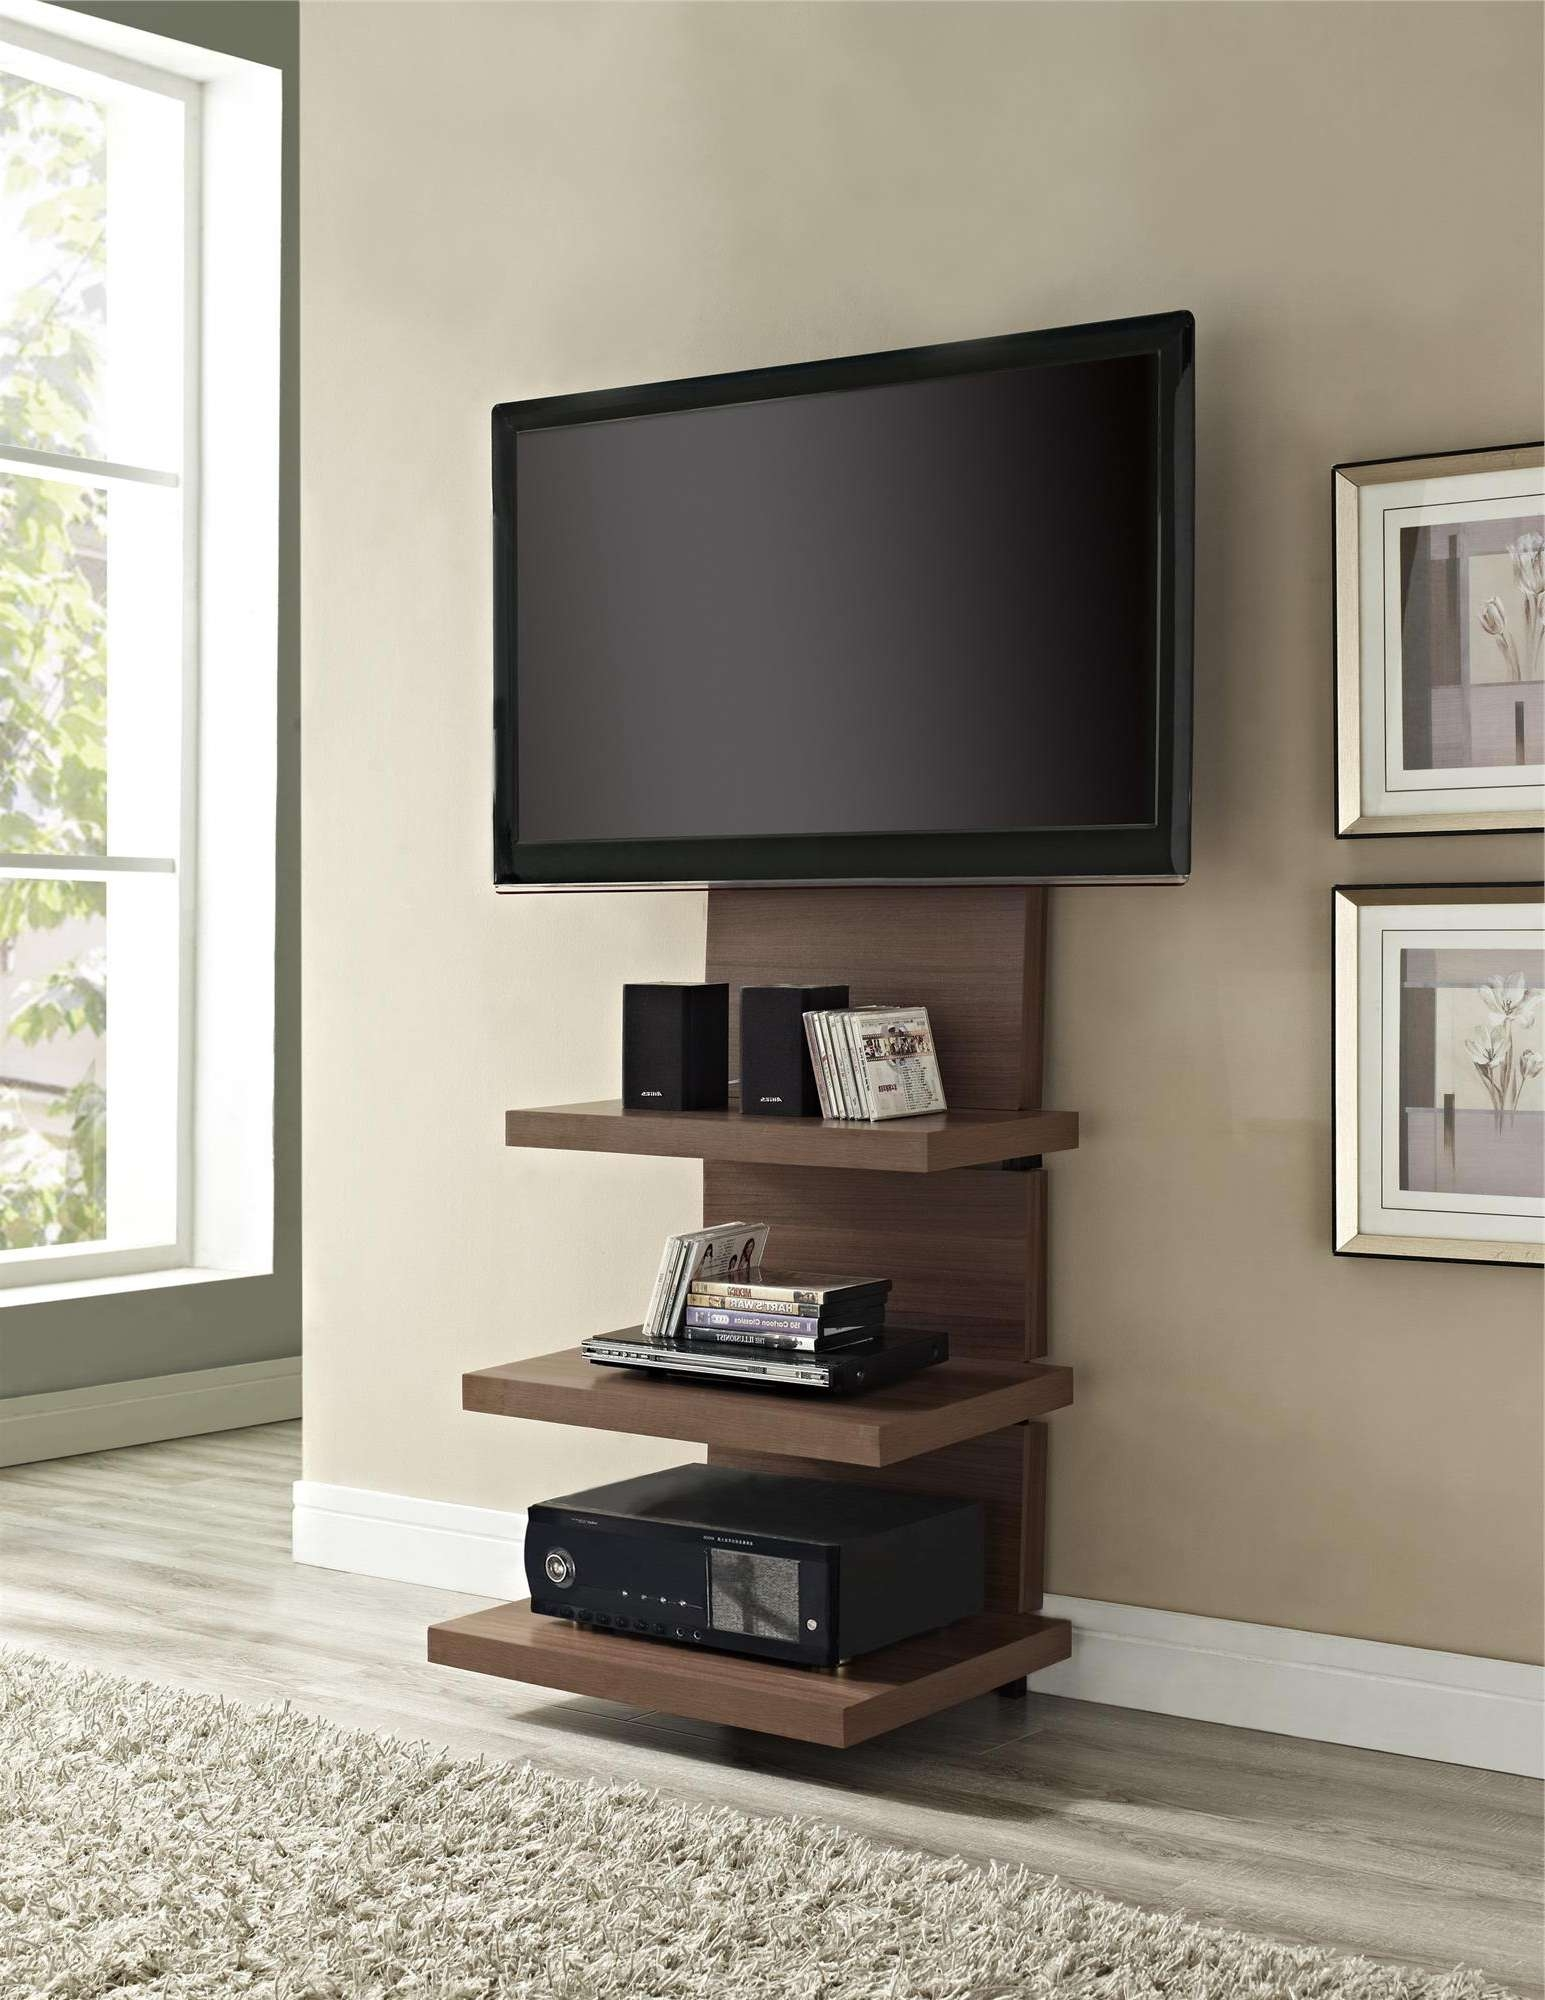 Tall Wood Wall Mounted Tv Stand With Shelves And Mount For Flat With Unique Tv Stands For Flat Screens (View 5 of 15)